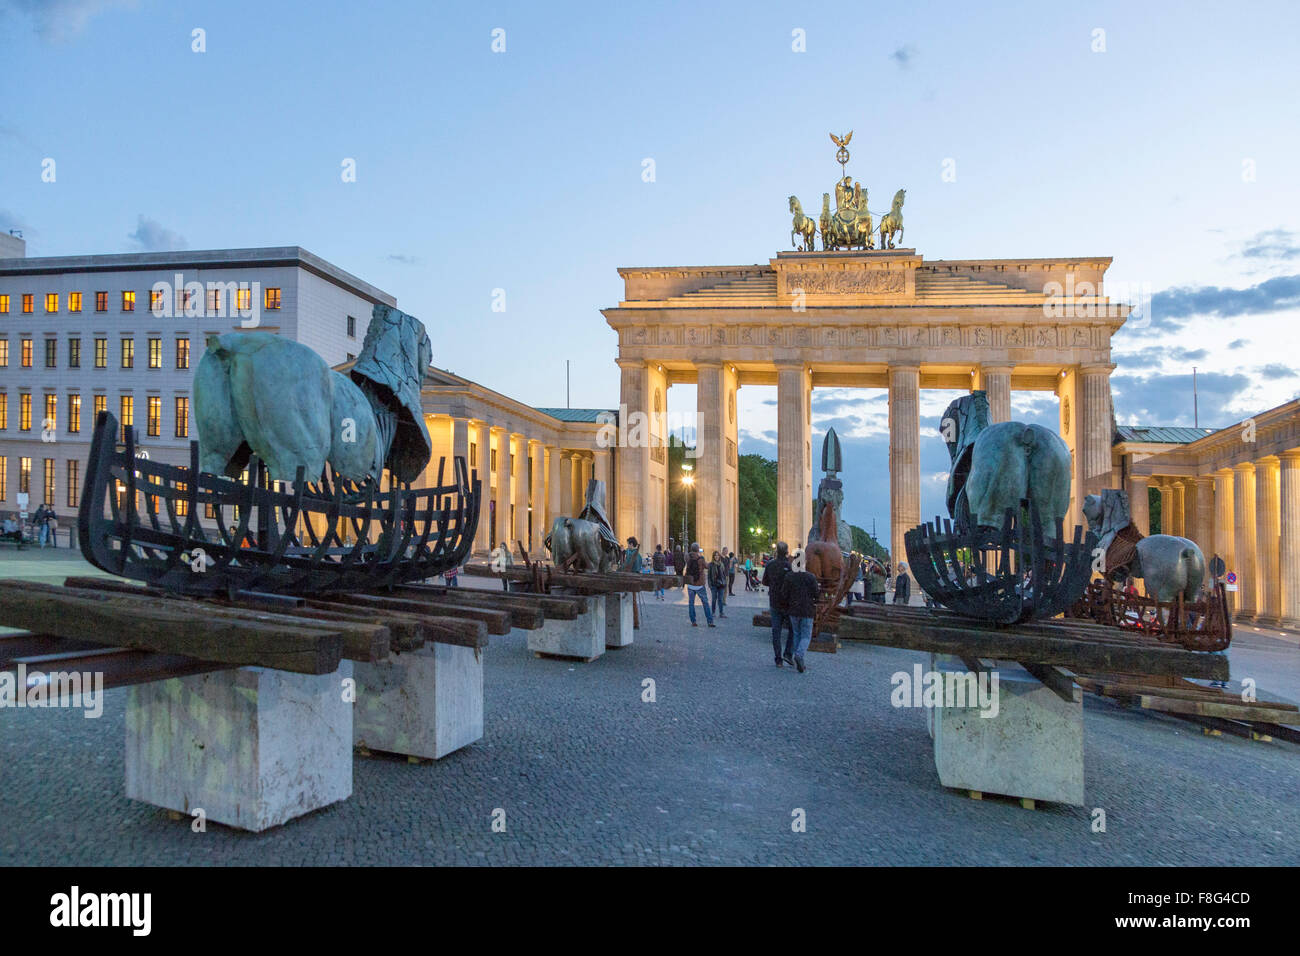 Lapidarium , Open Air Exebition by Gustavo Aceves at Paris Sqaure, Brandenburg Gate, Berlin - Stock Image